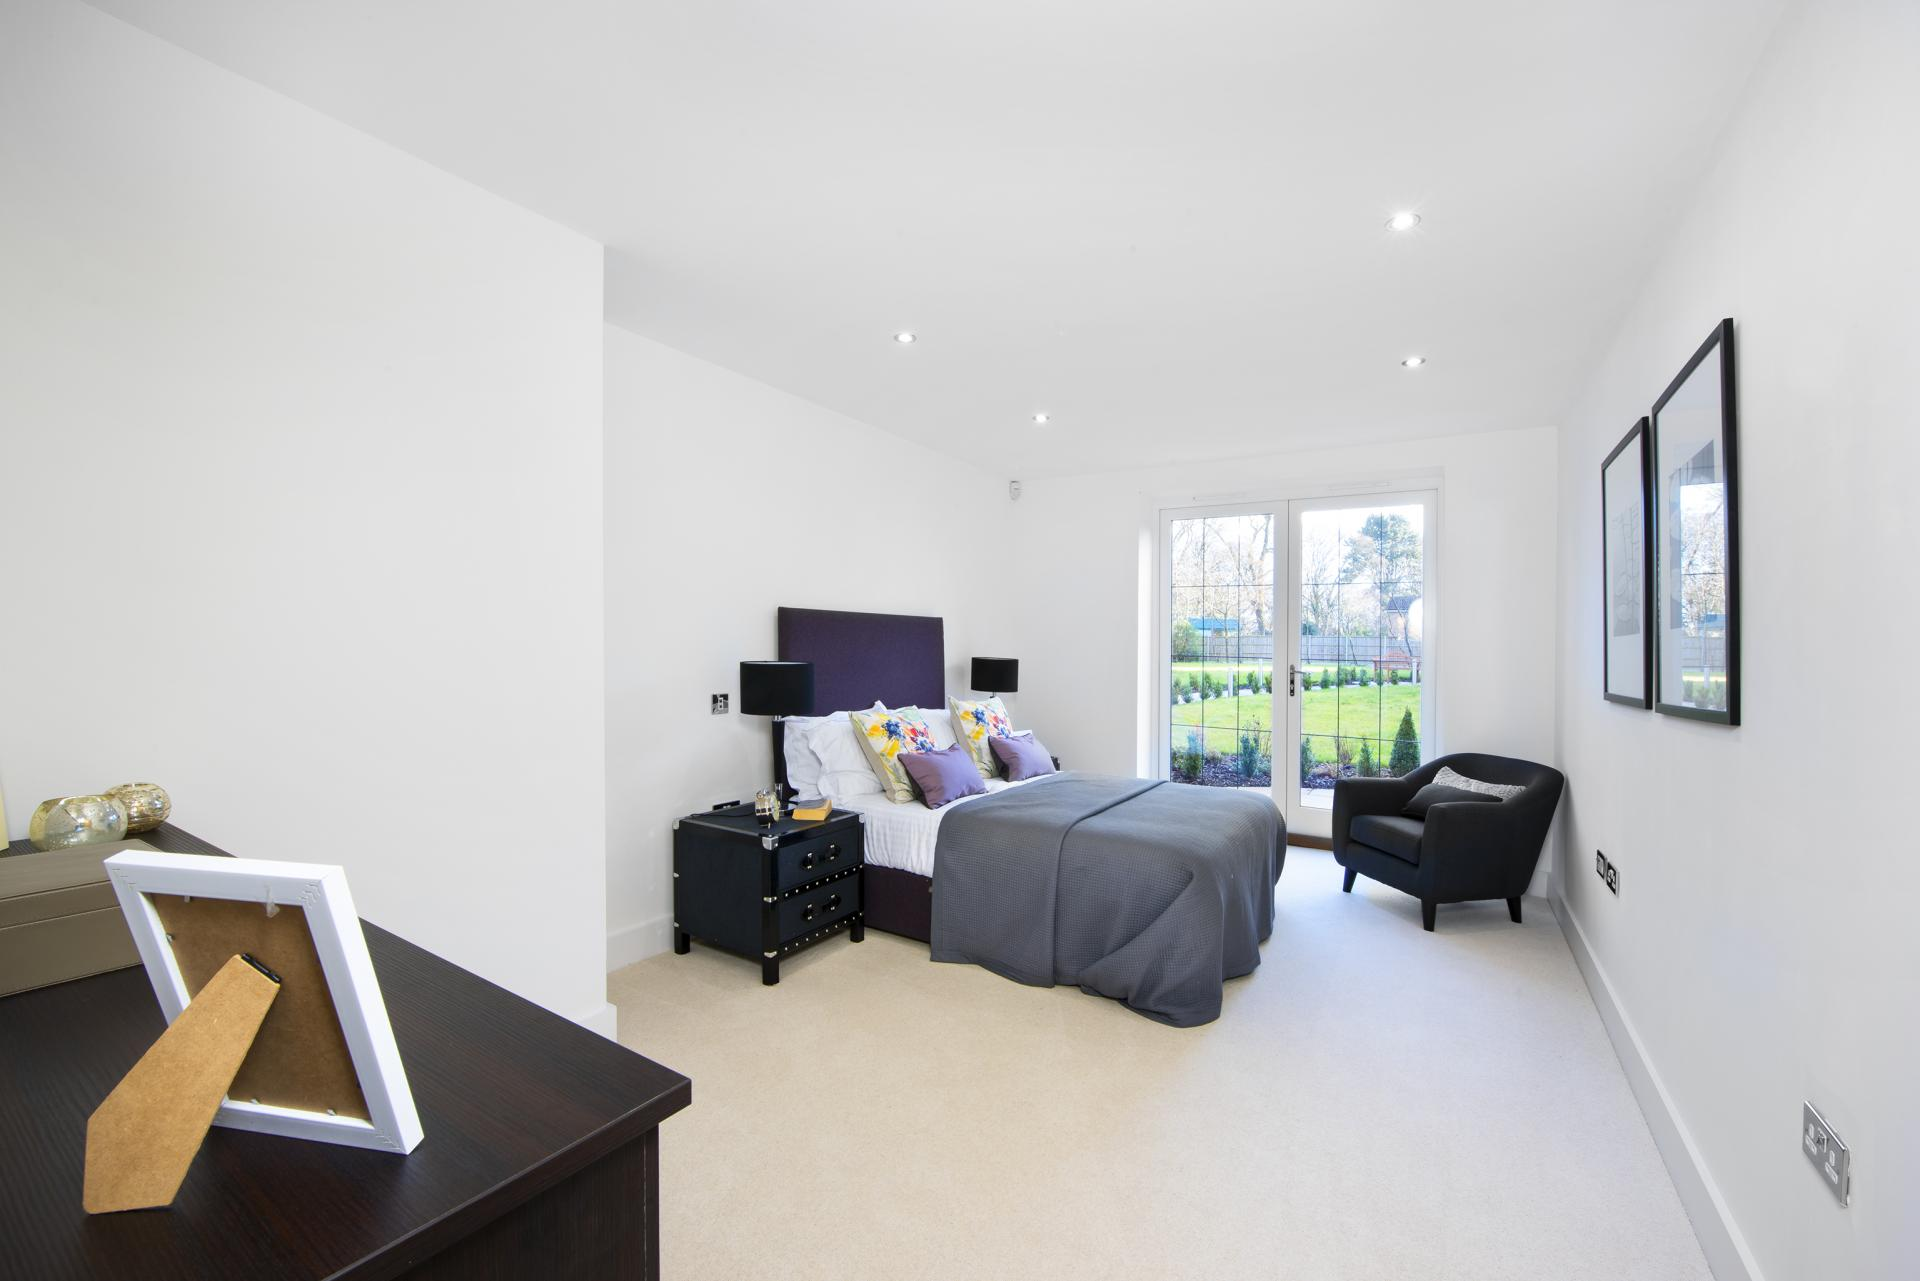 3 Bedroom Apartment For Sale In Sutton Coldfield